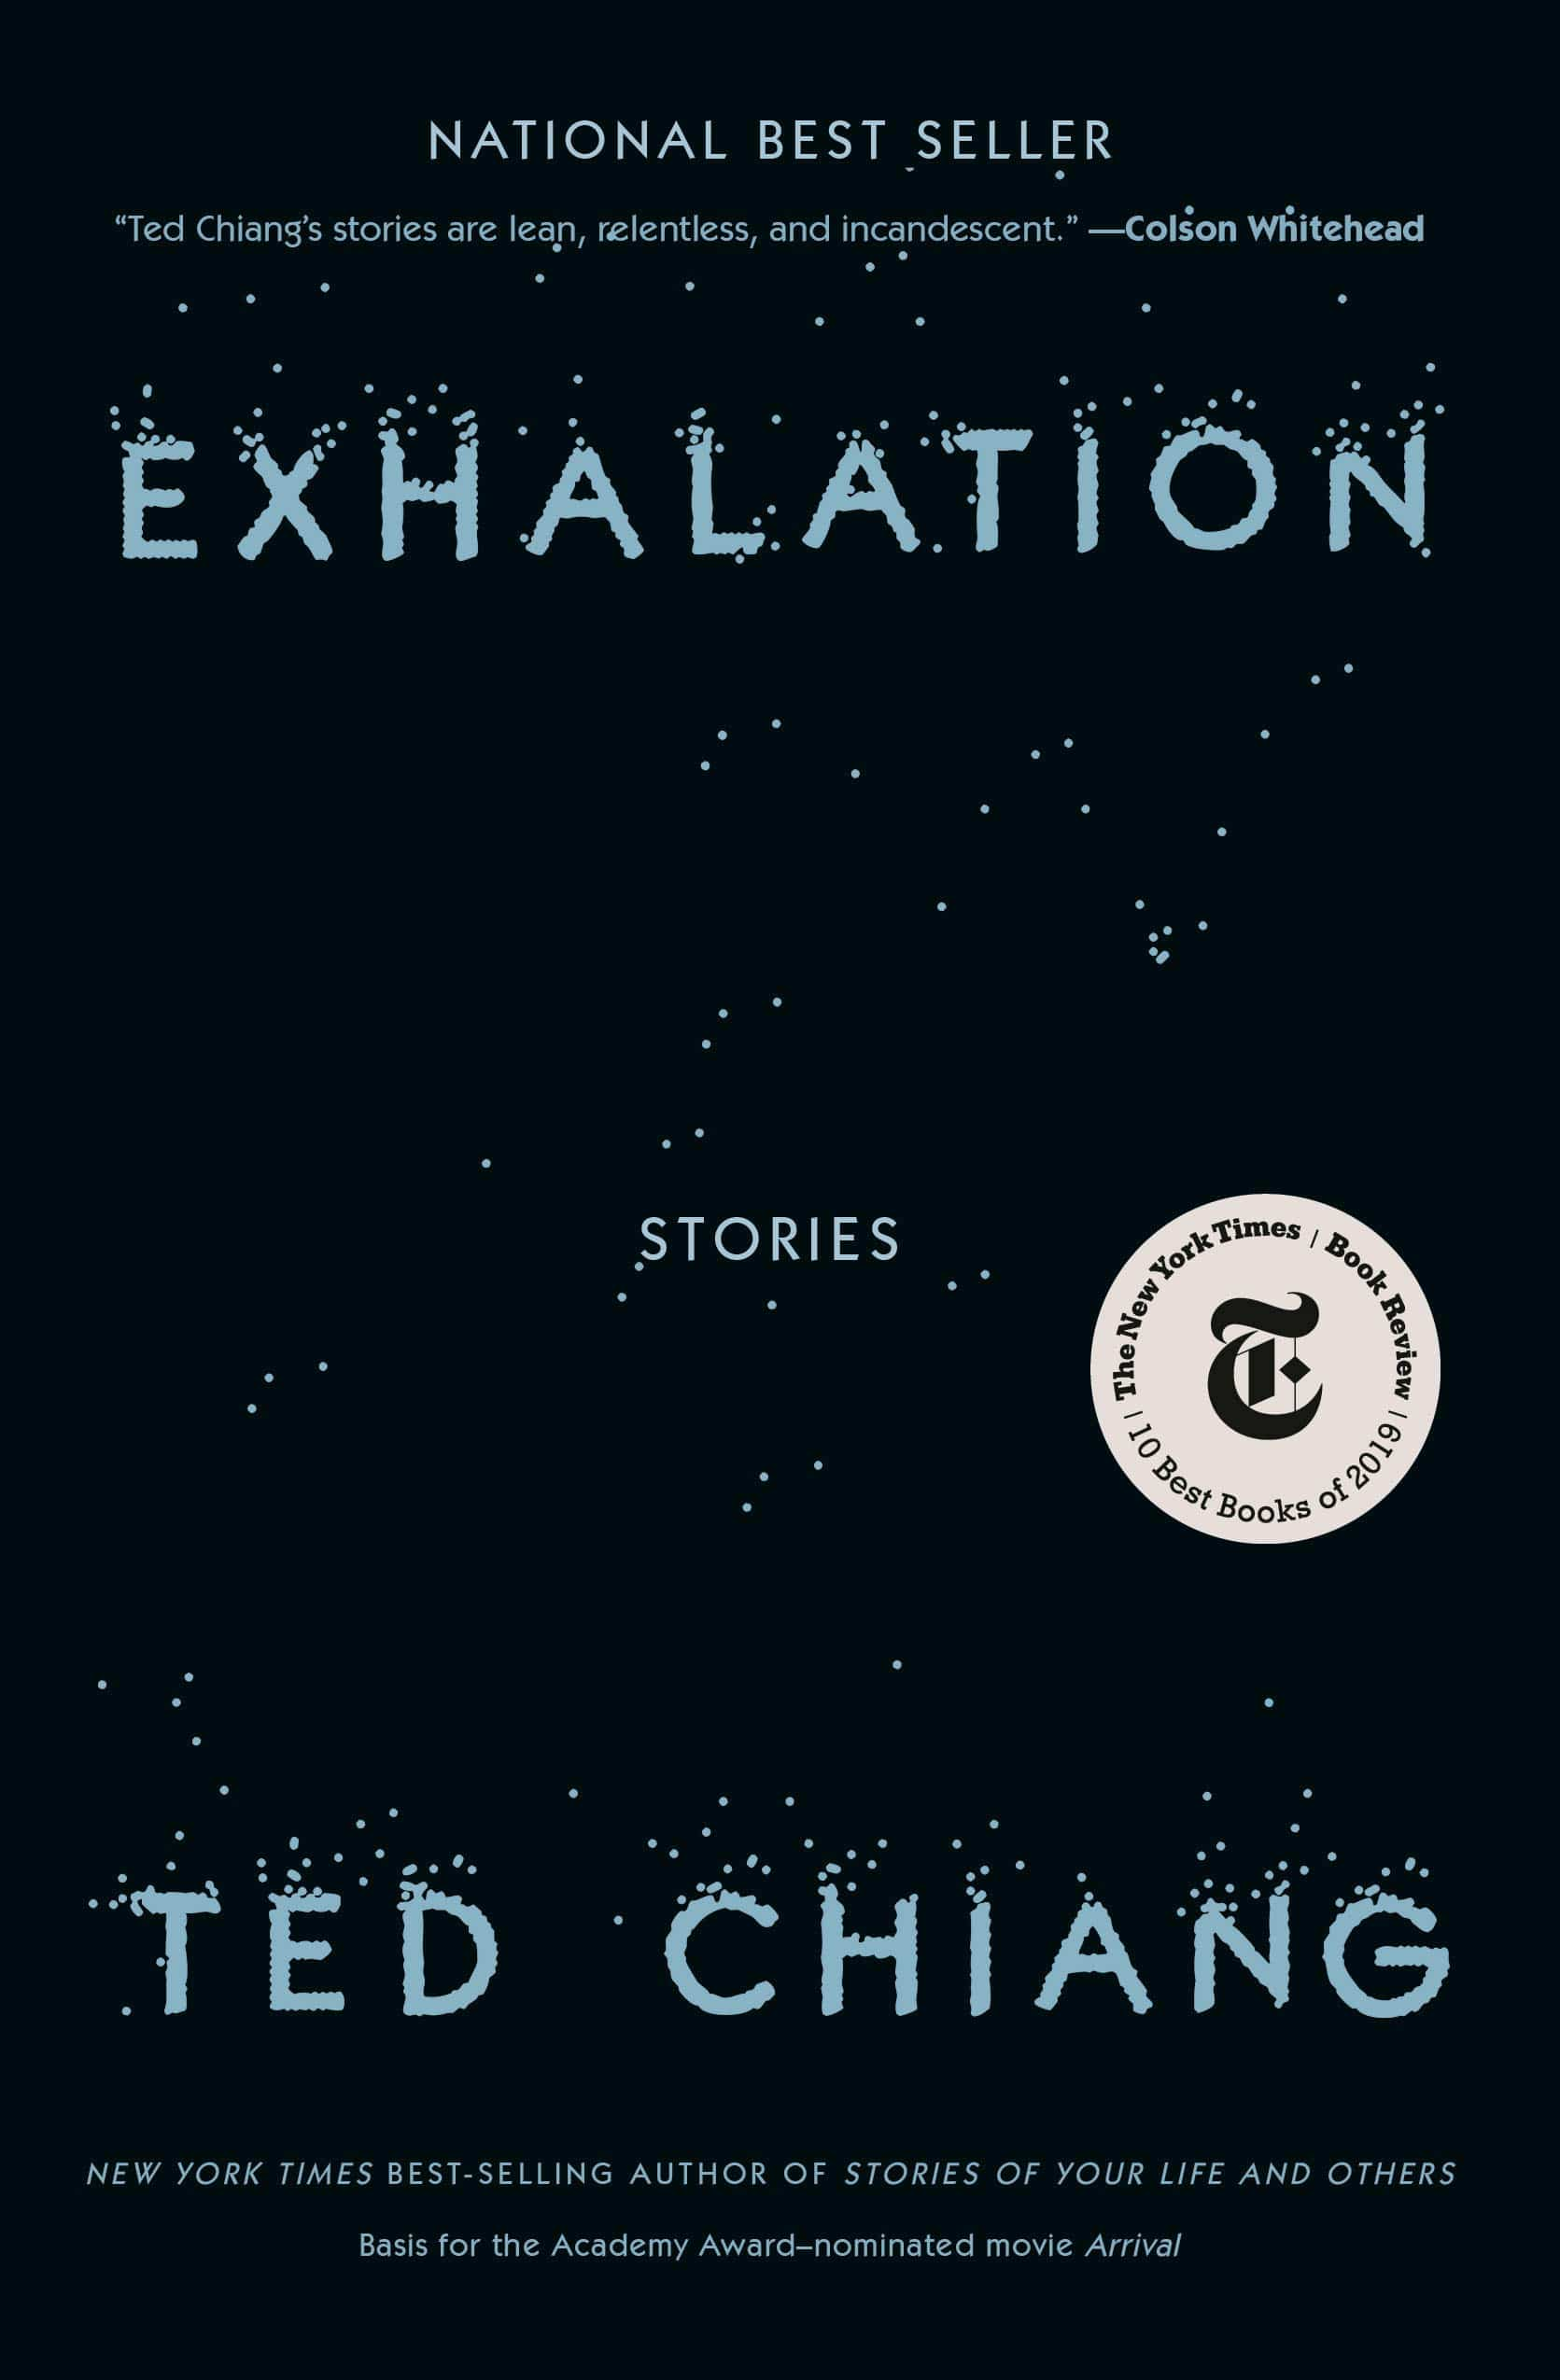 The cover of Exhalation